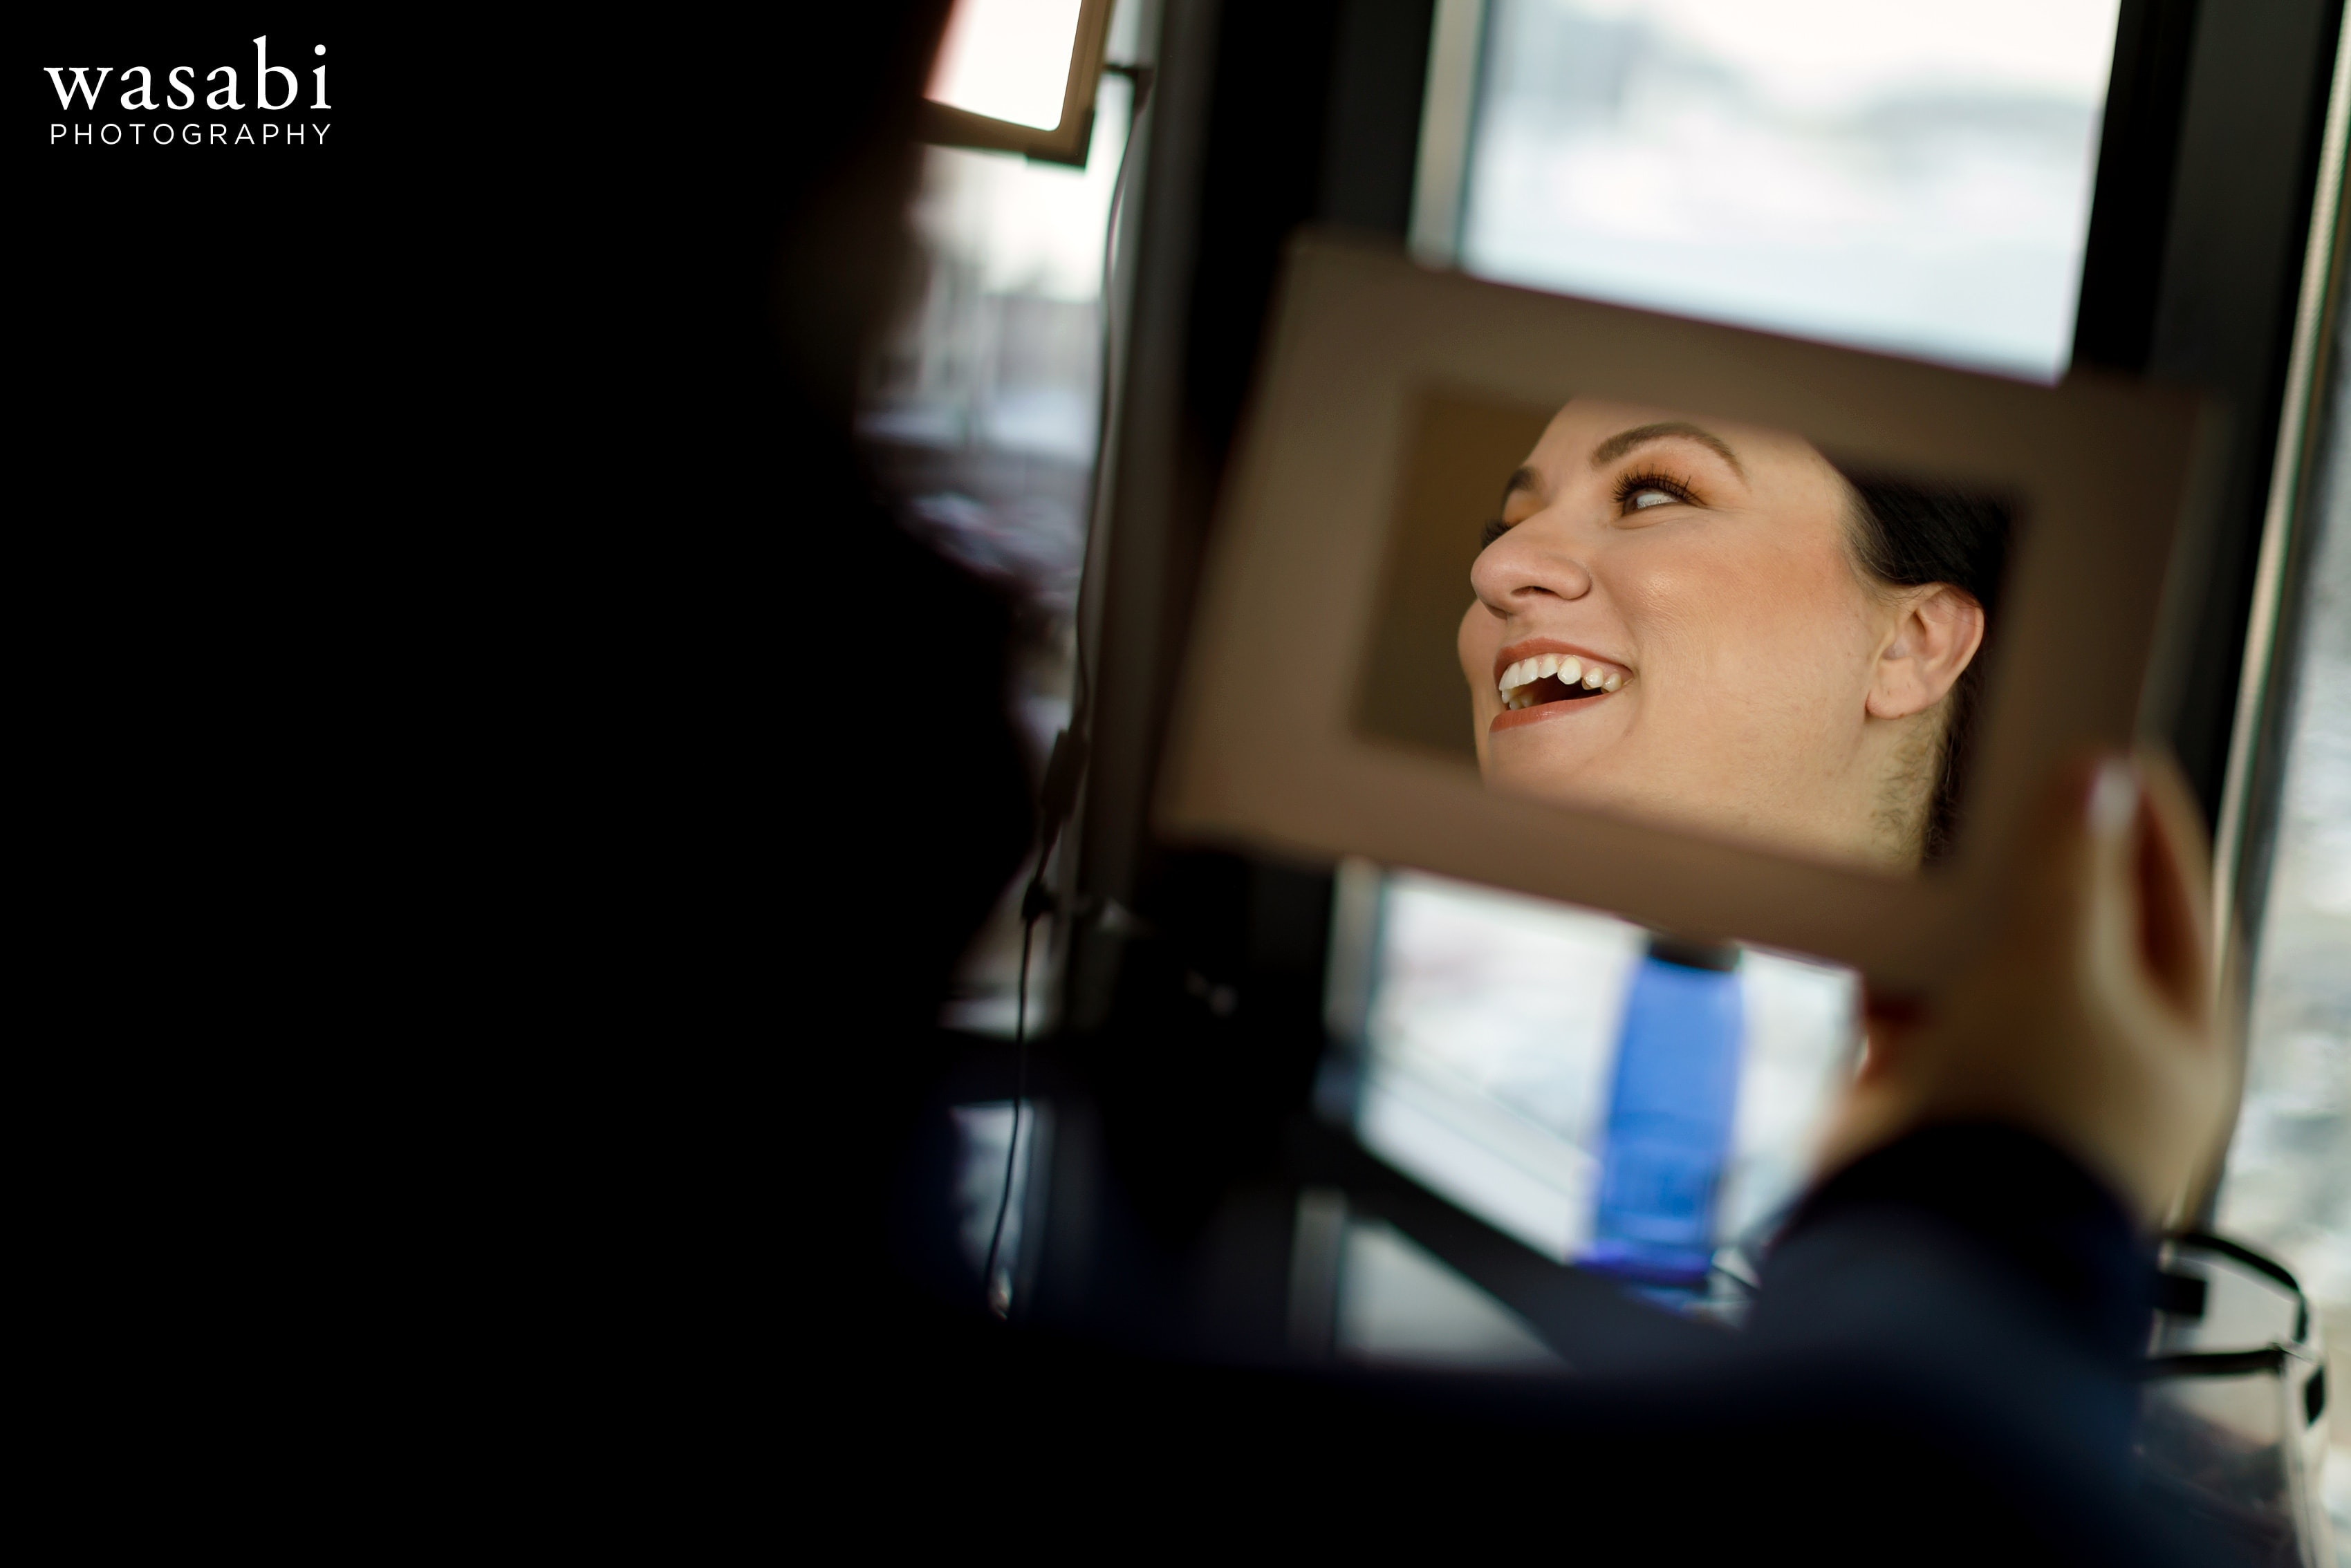 bride laughs in mirror reflection while having her makeup done before her wedding